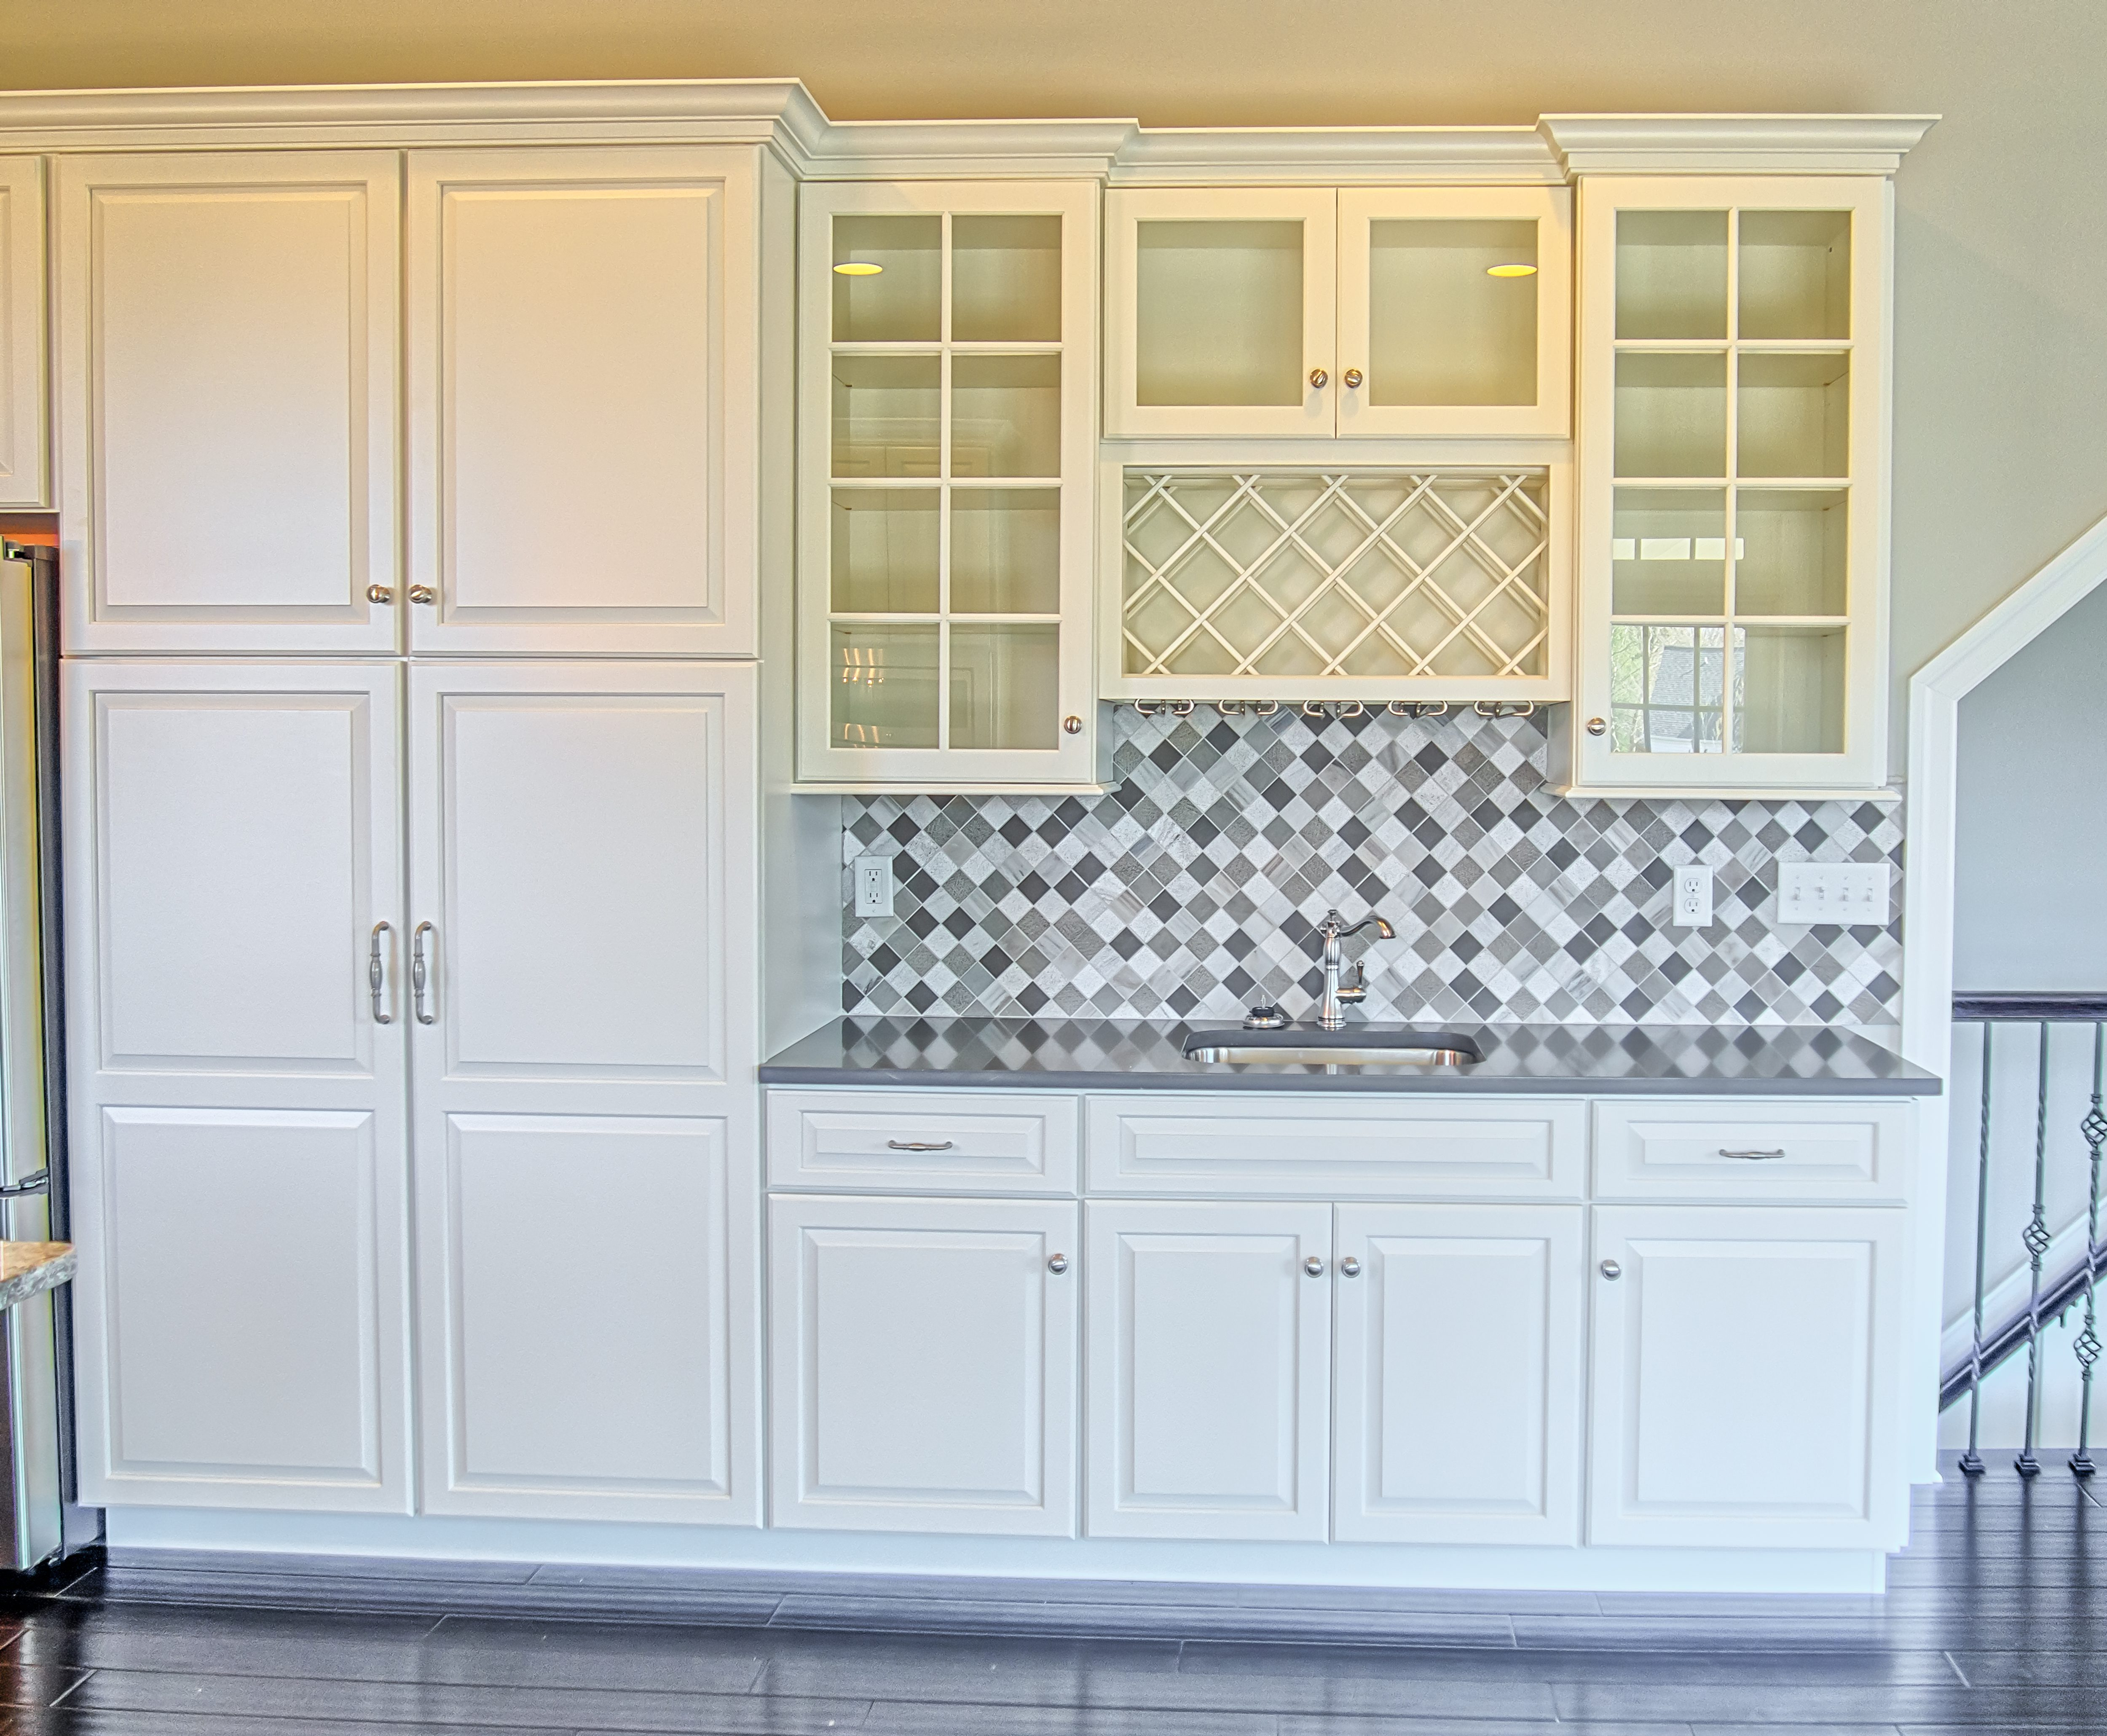 floor-to-ceiling cabinetry